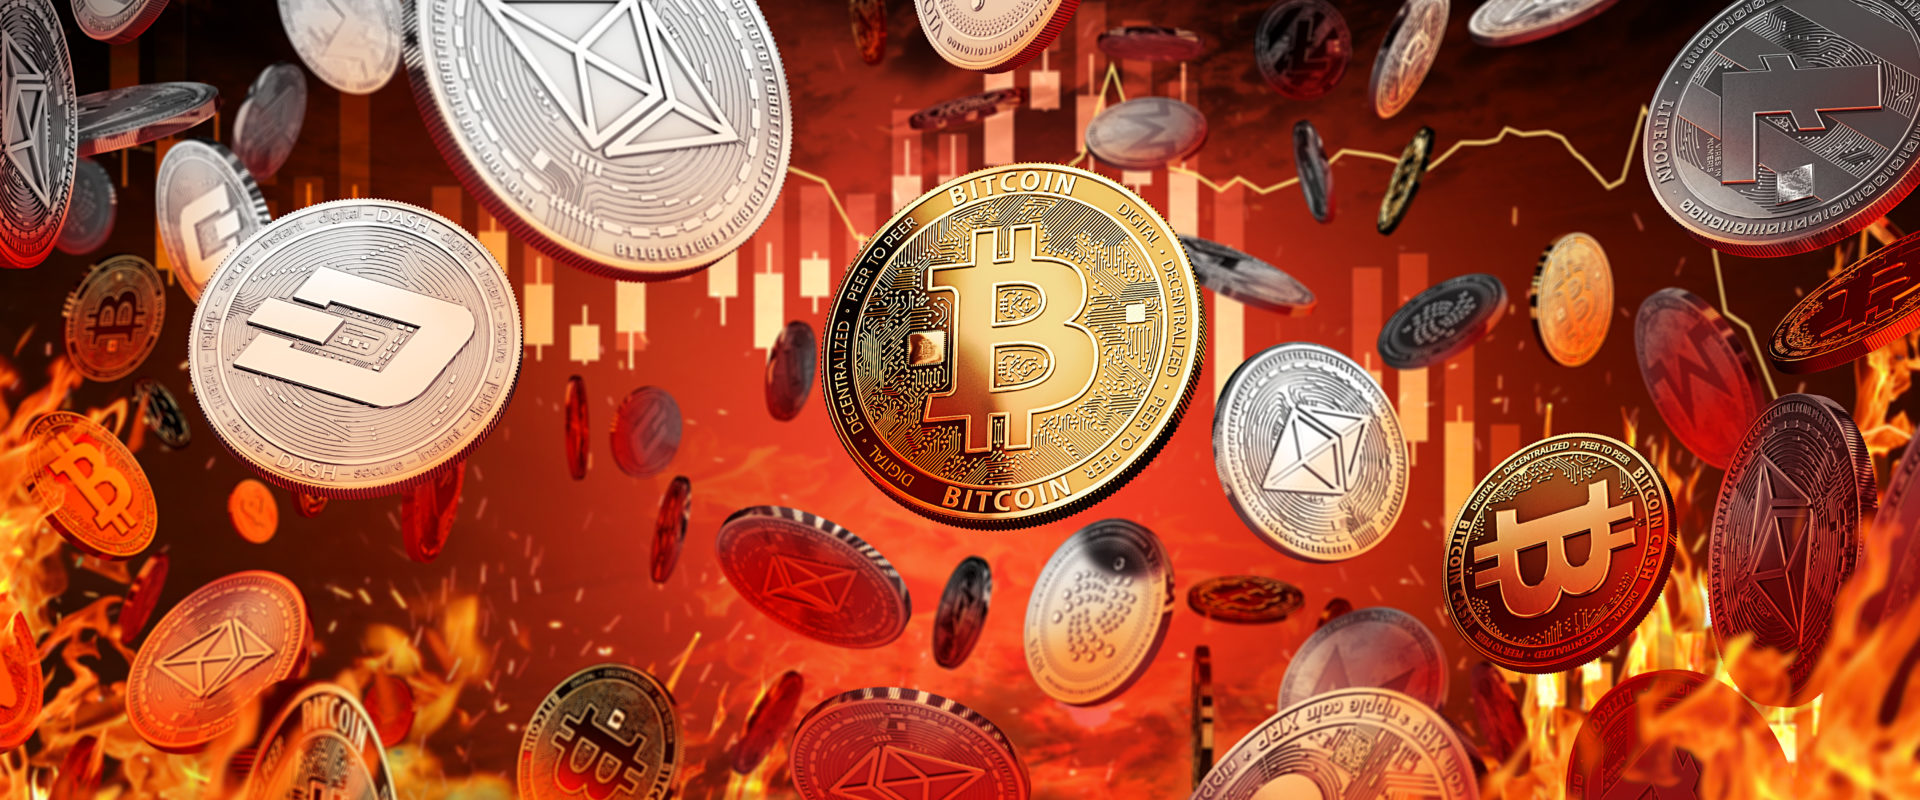 Altcoin Trader: Alt Bitcoin Bear Cycle Almost Over, 600% Gains During Bull Cycle Expected